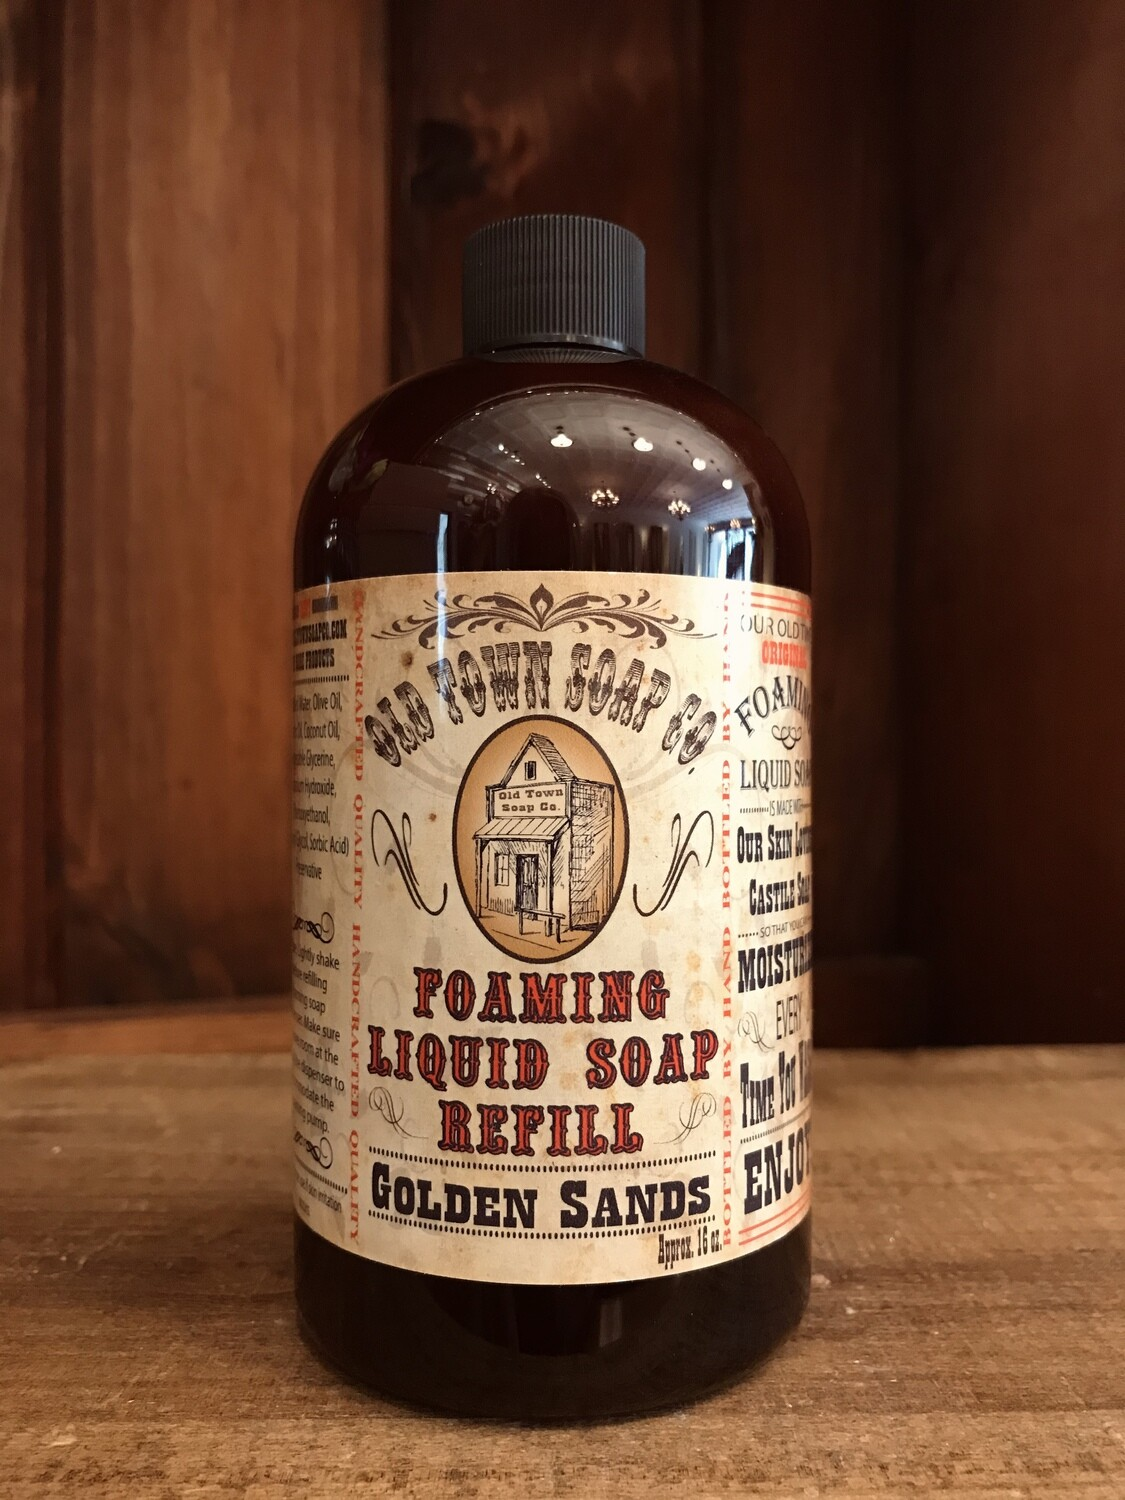 Golden Sands -Refill Liquid Soap